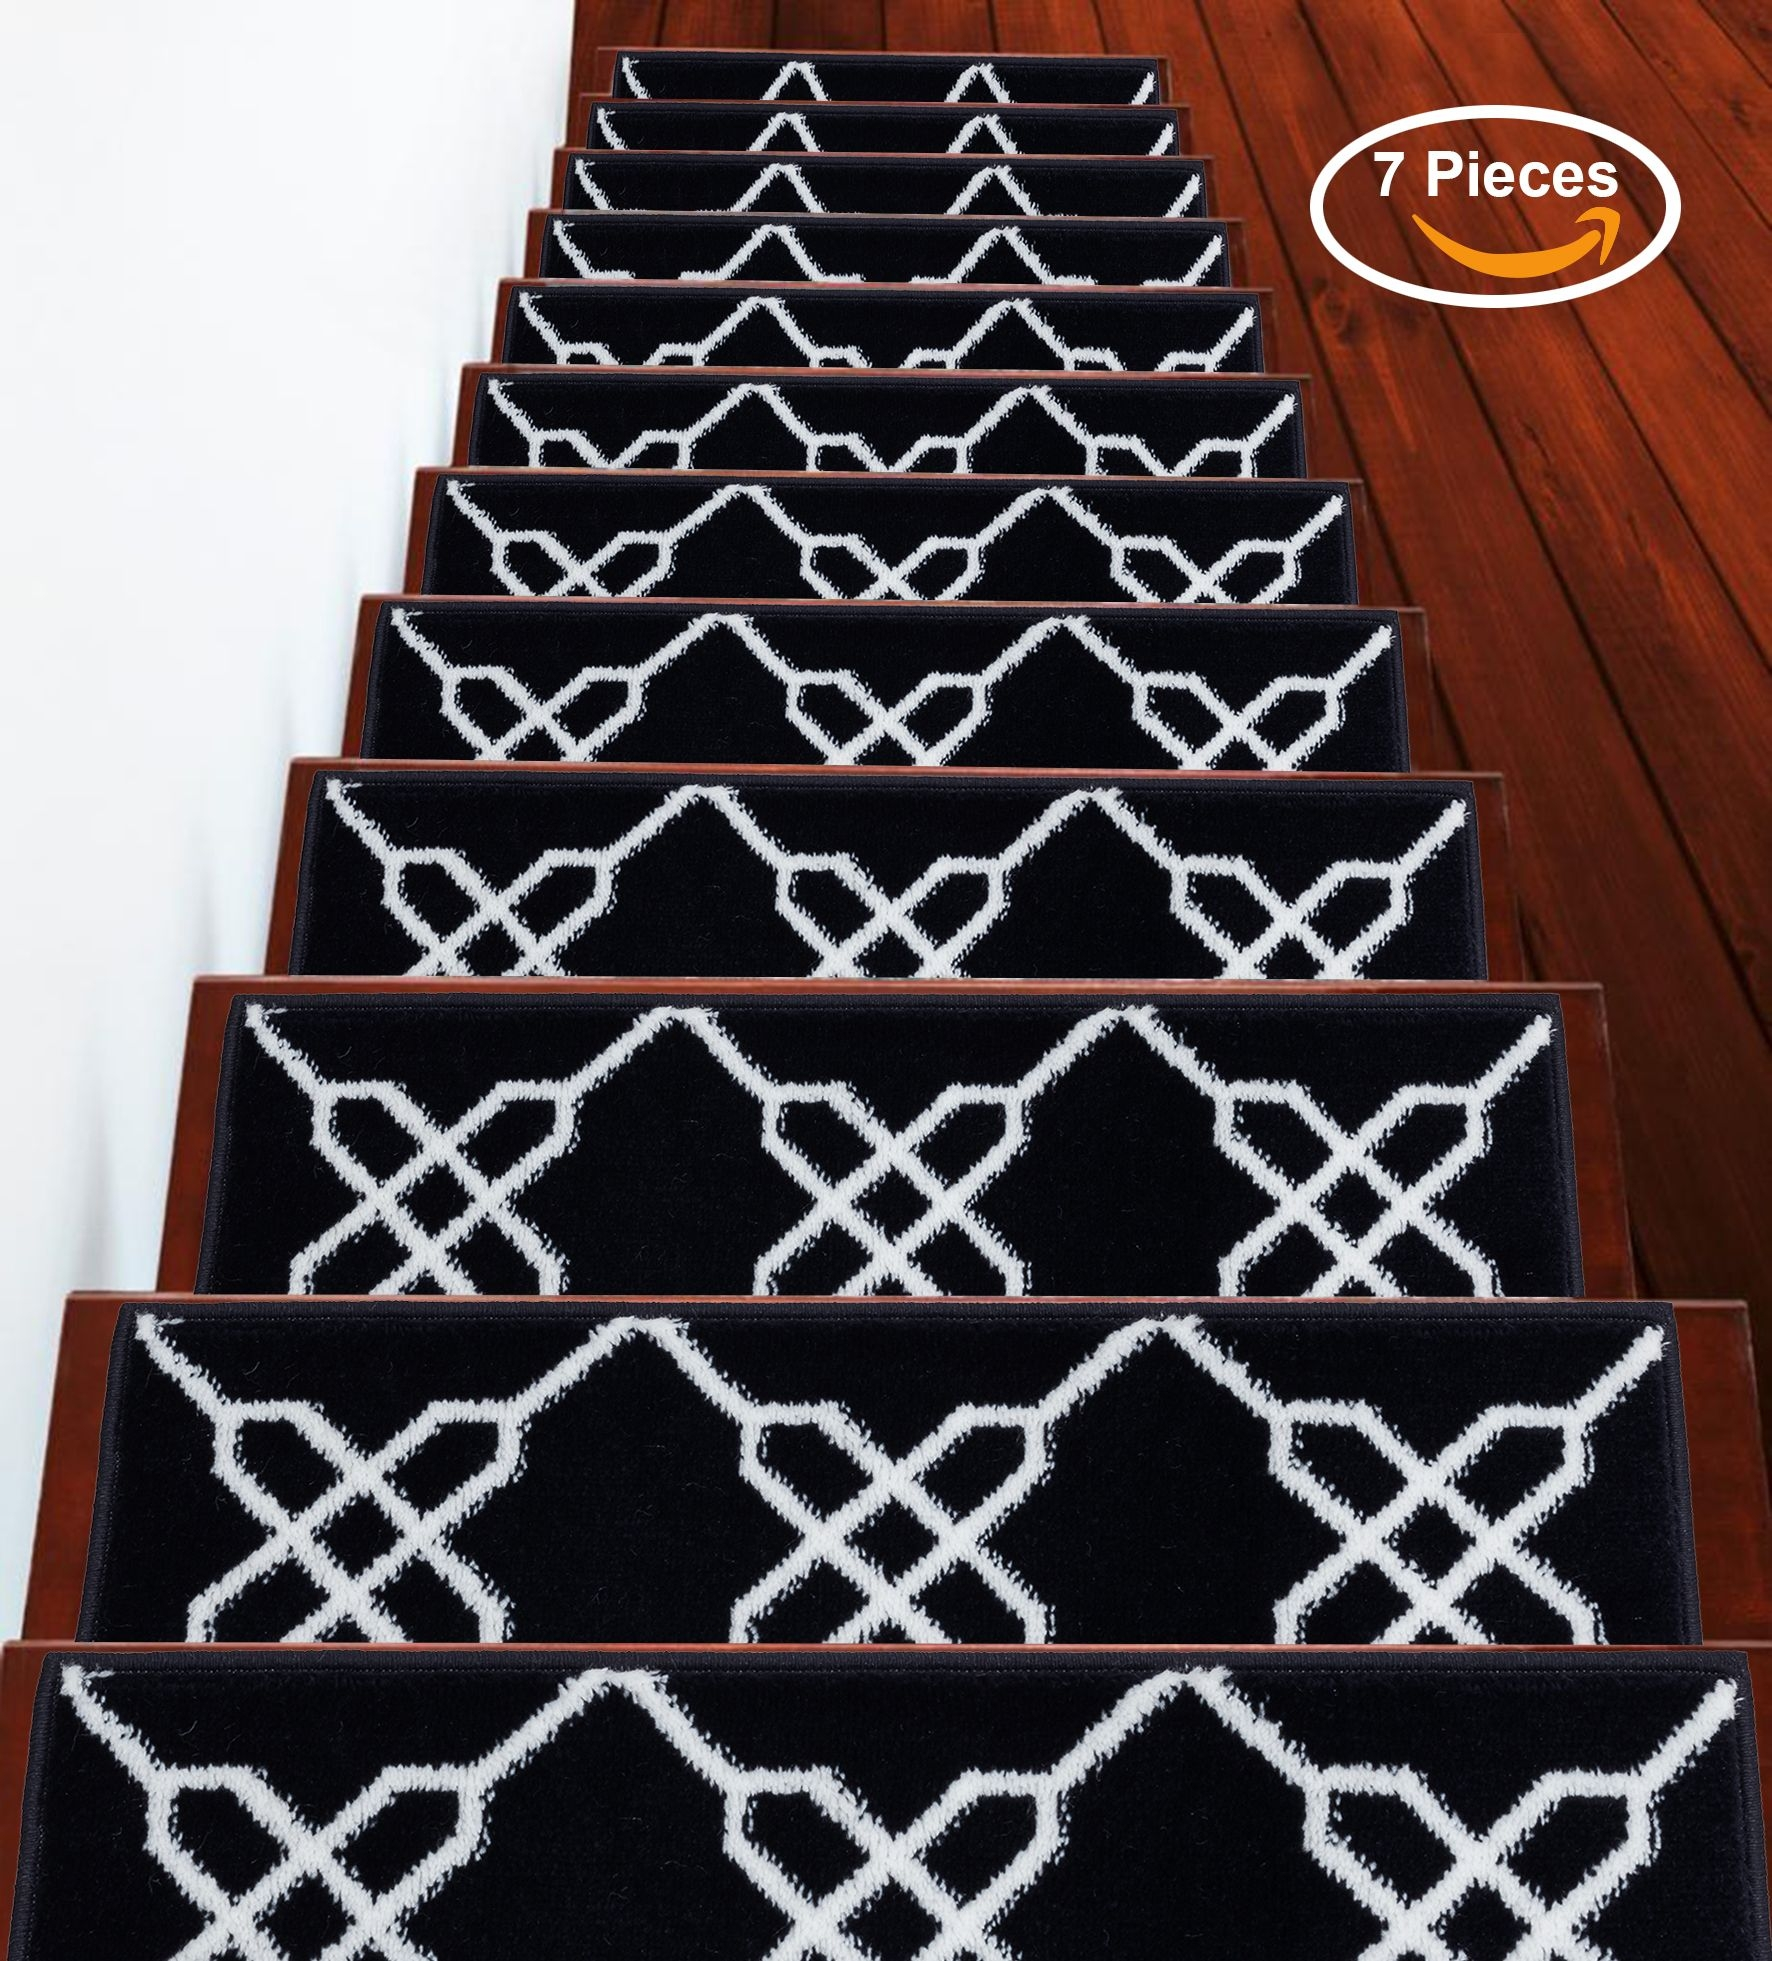 Sussexhome Stairs Slide Stair Treads Carpet Stair Tread Non | Stair Runners For Carpeted Stairs | Round Corner | Marble | Hardwood | Commercial | Tile Stair